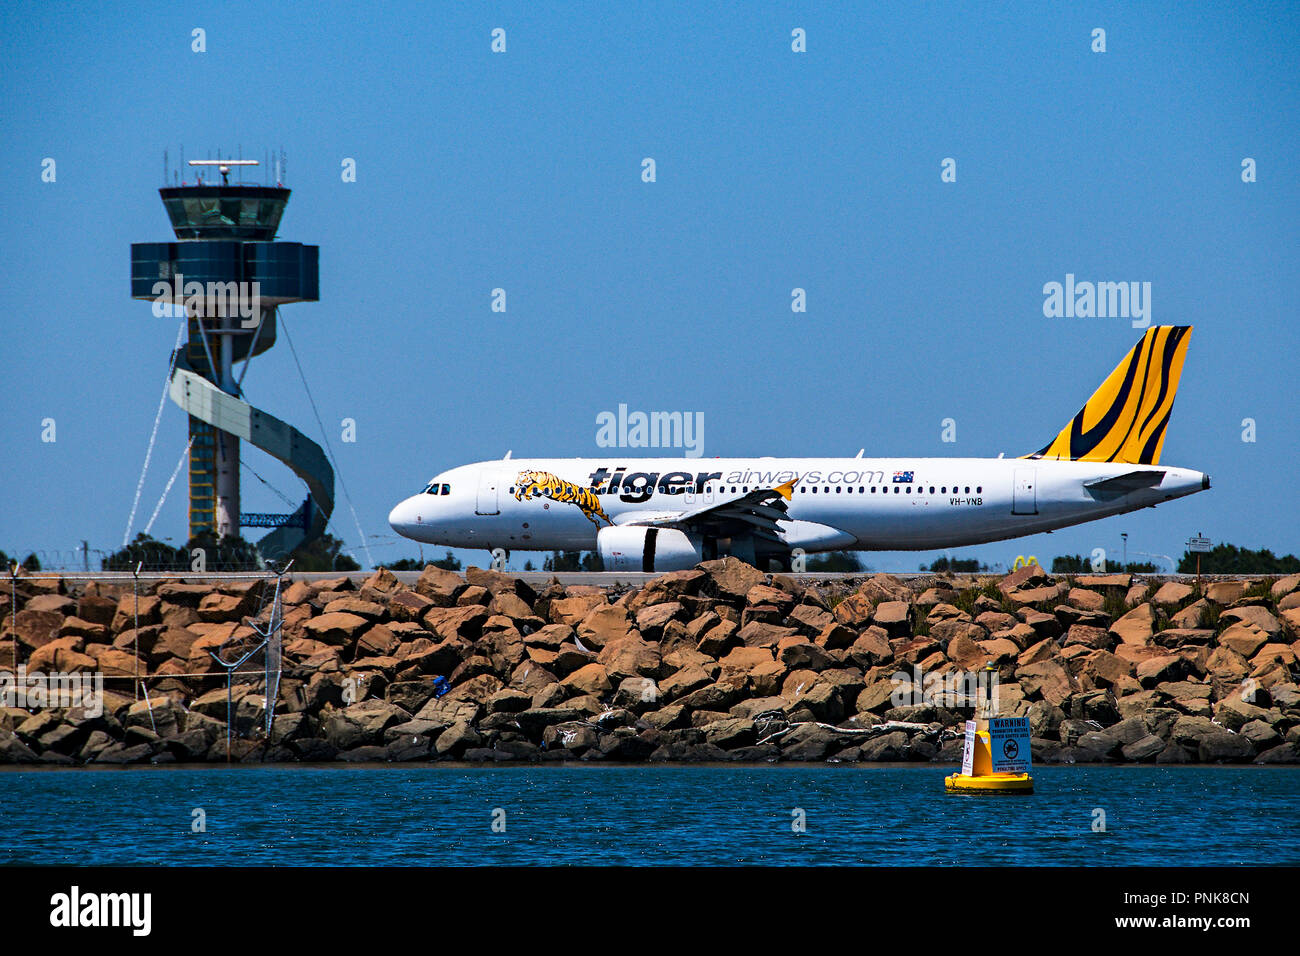 Sydney, New South Wales, Australia - November 7. 2013: Tiger Airways commercial passenger jet aircraft taxing past the control tower. - Stock Image